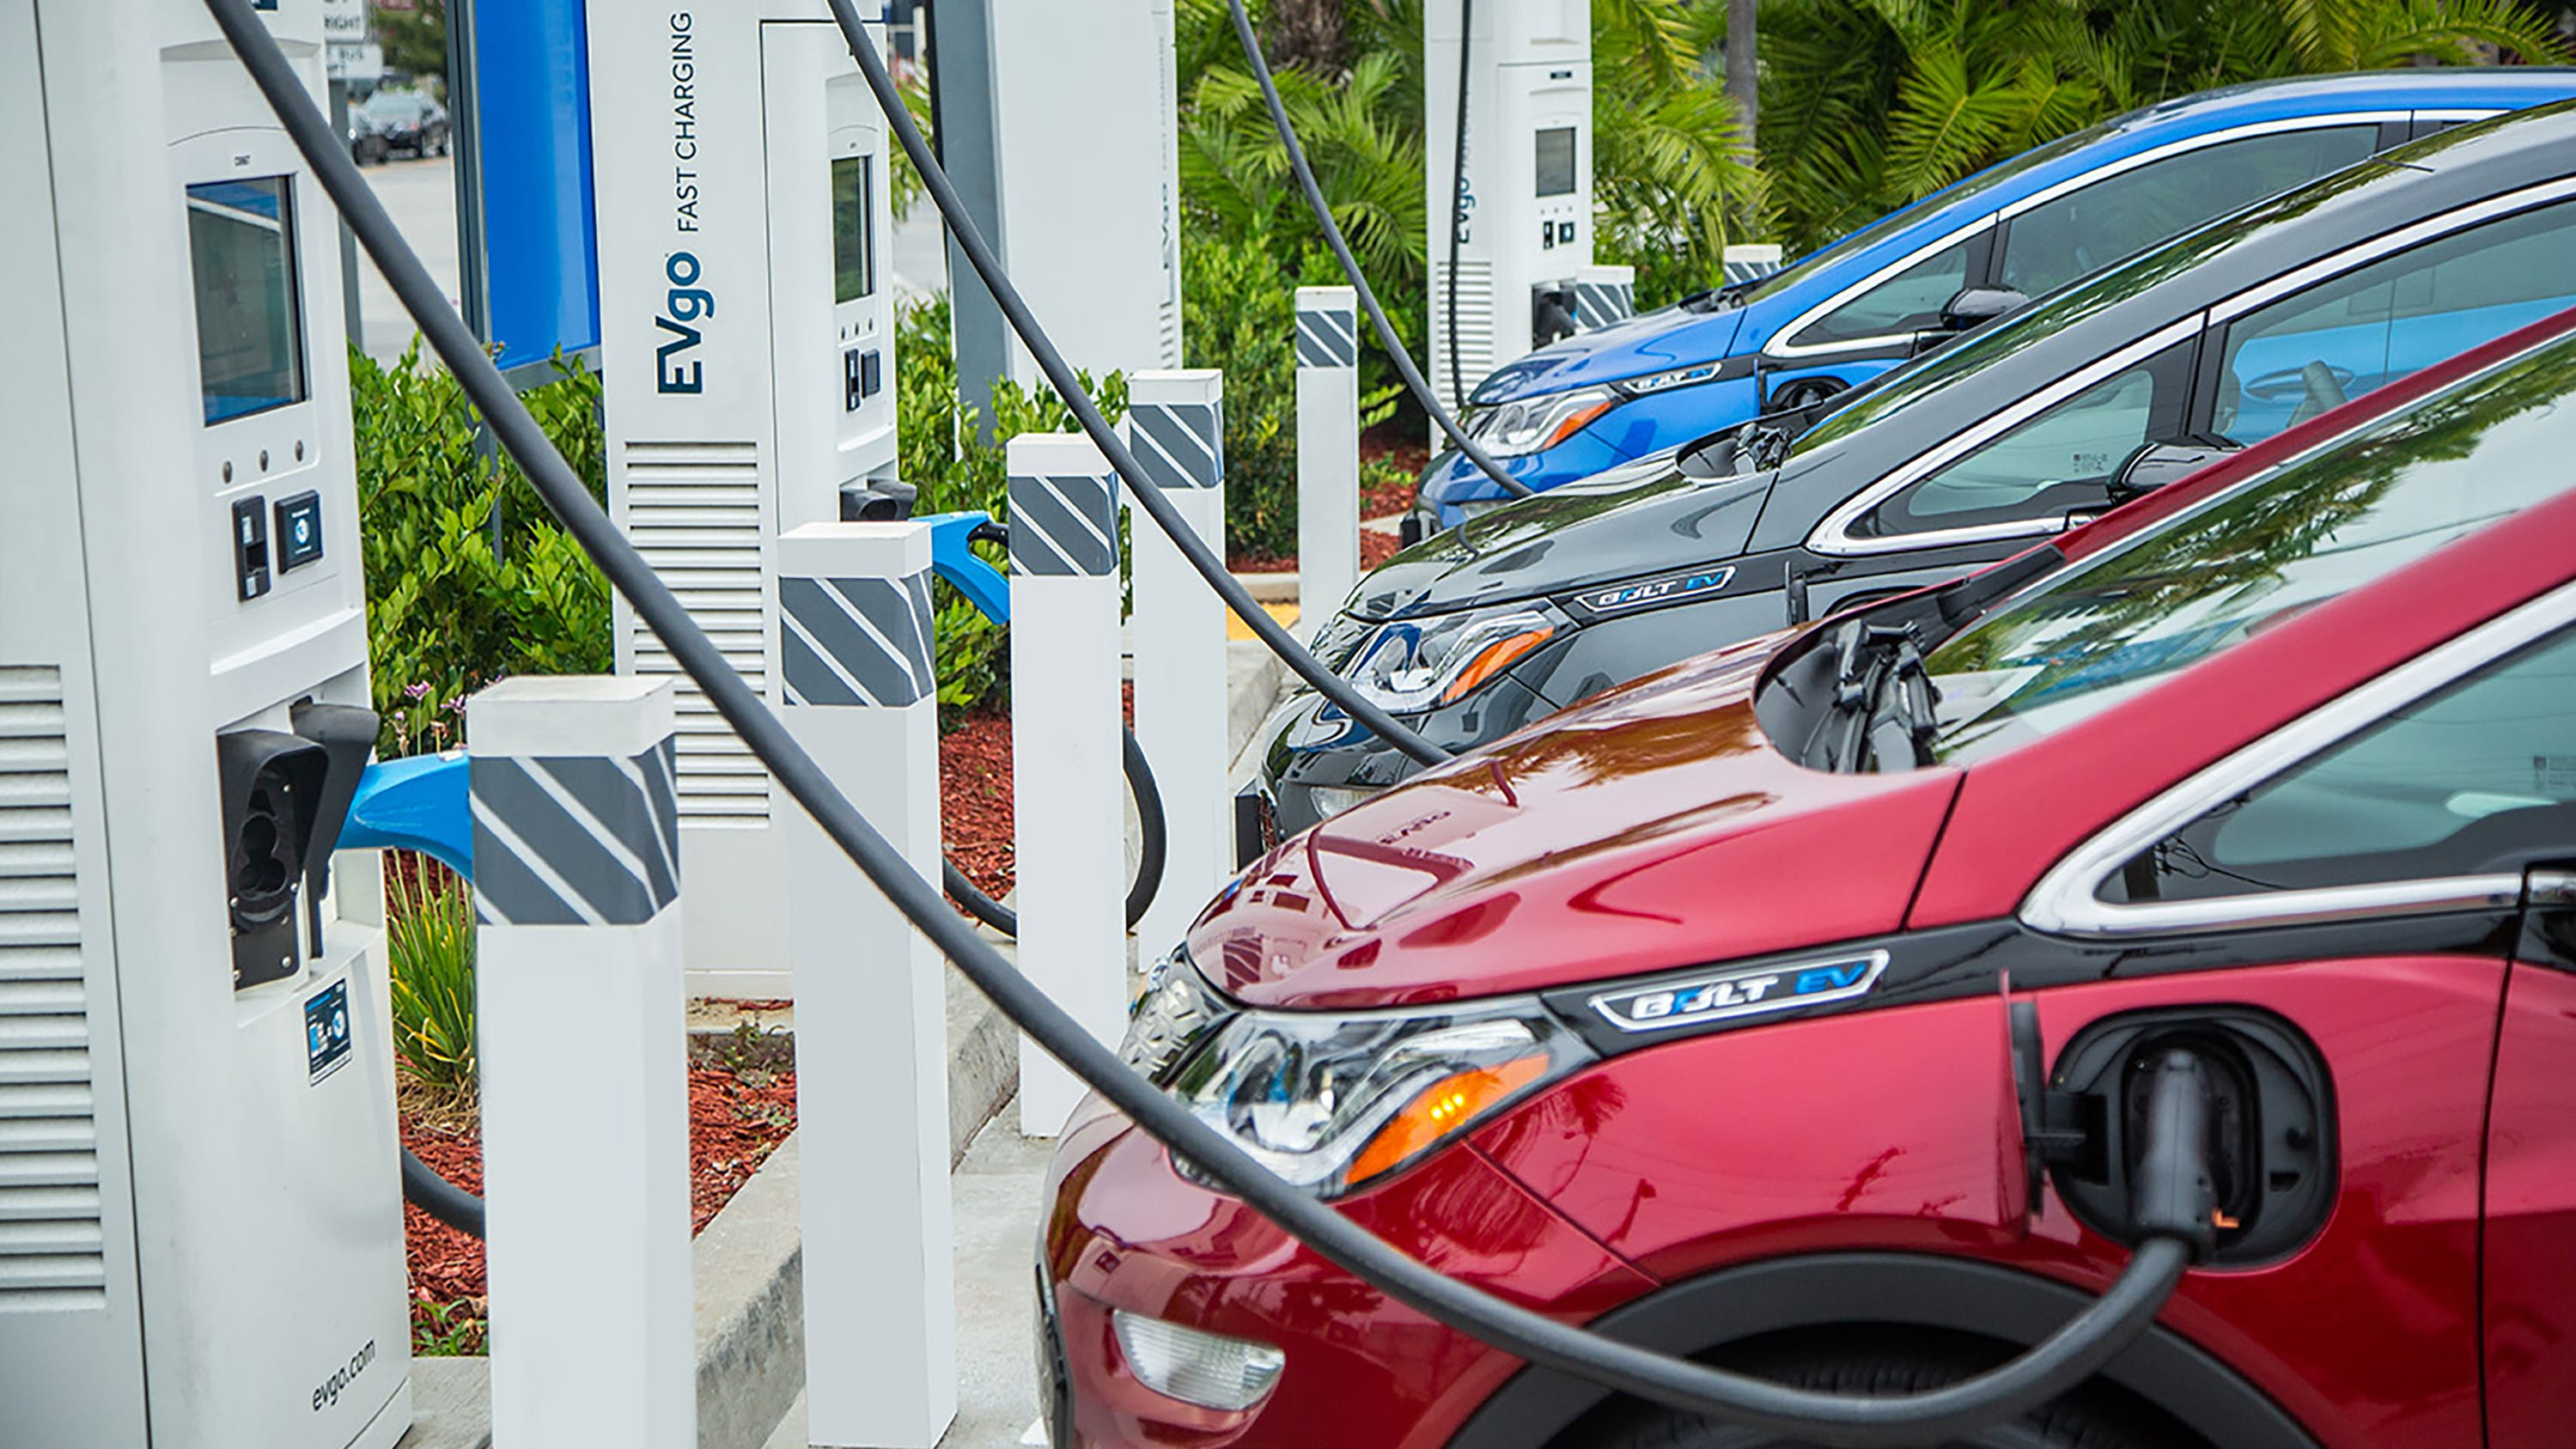 GM hopes to eliminate gas vehicles in favor of all-electric vehicle lineup by 2040